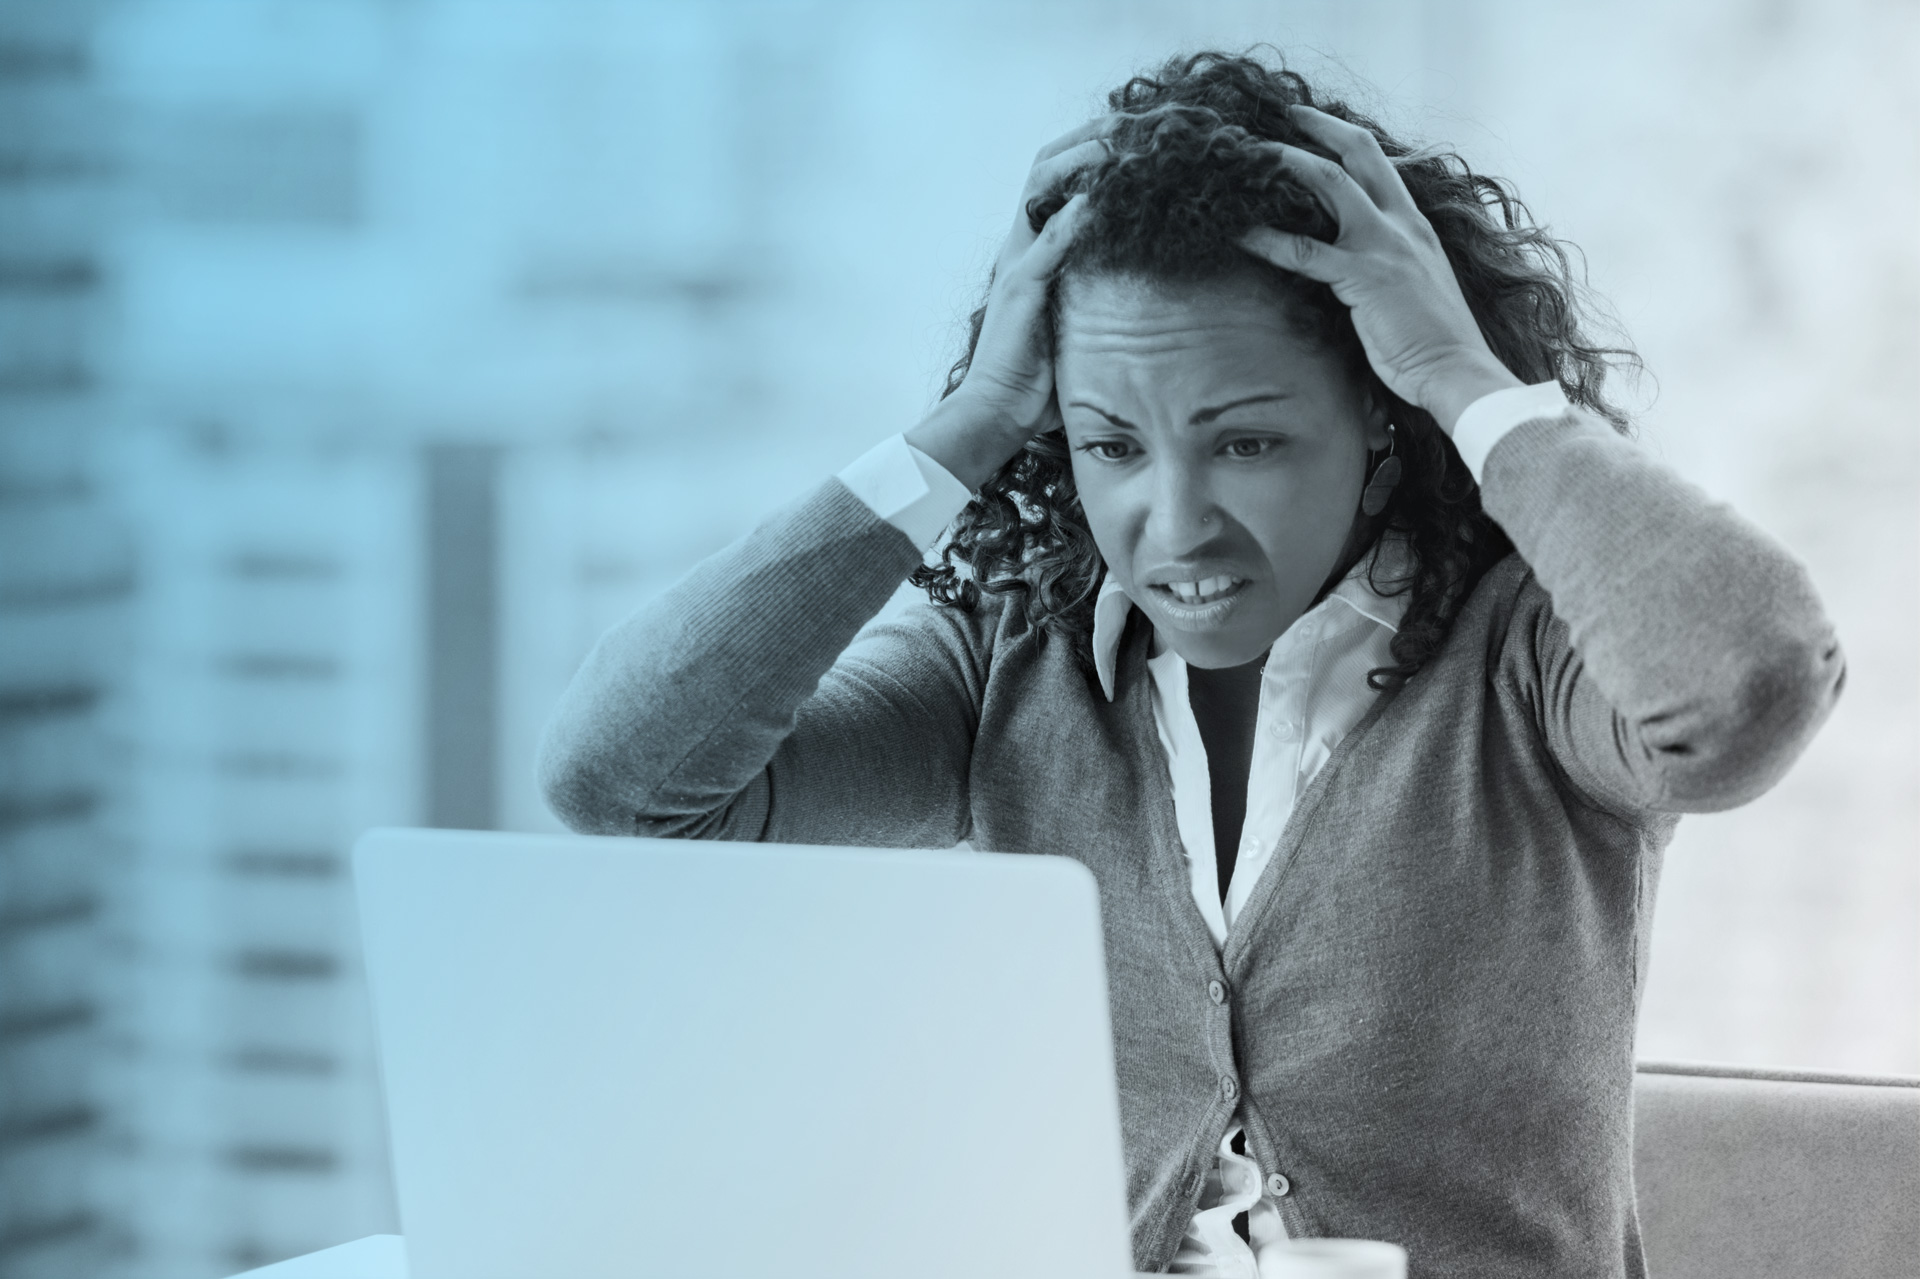 Black woman upset looking at computer